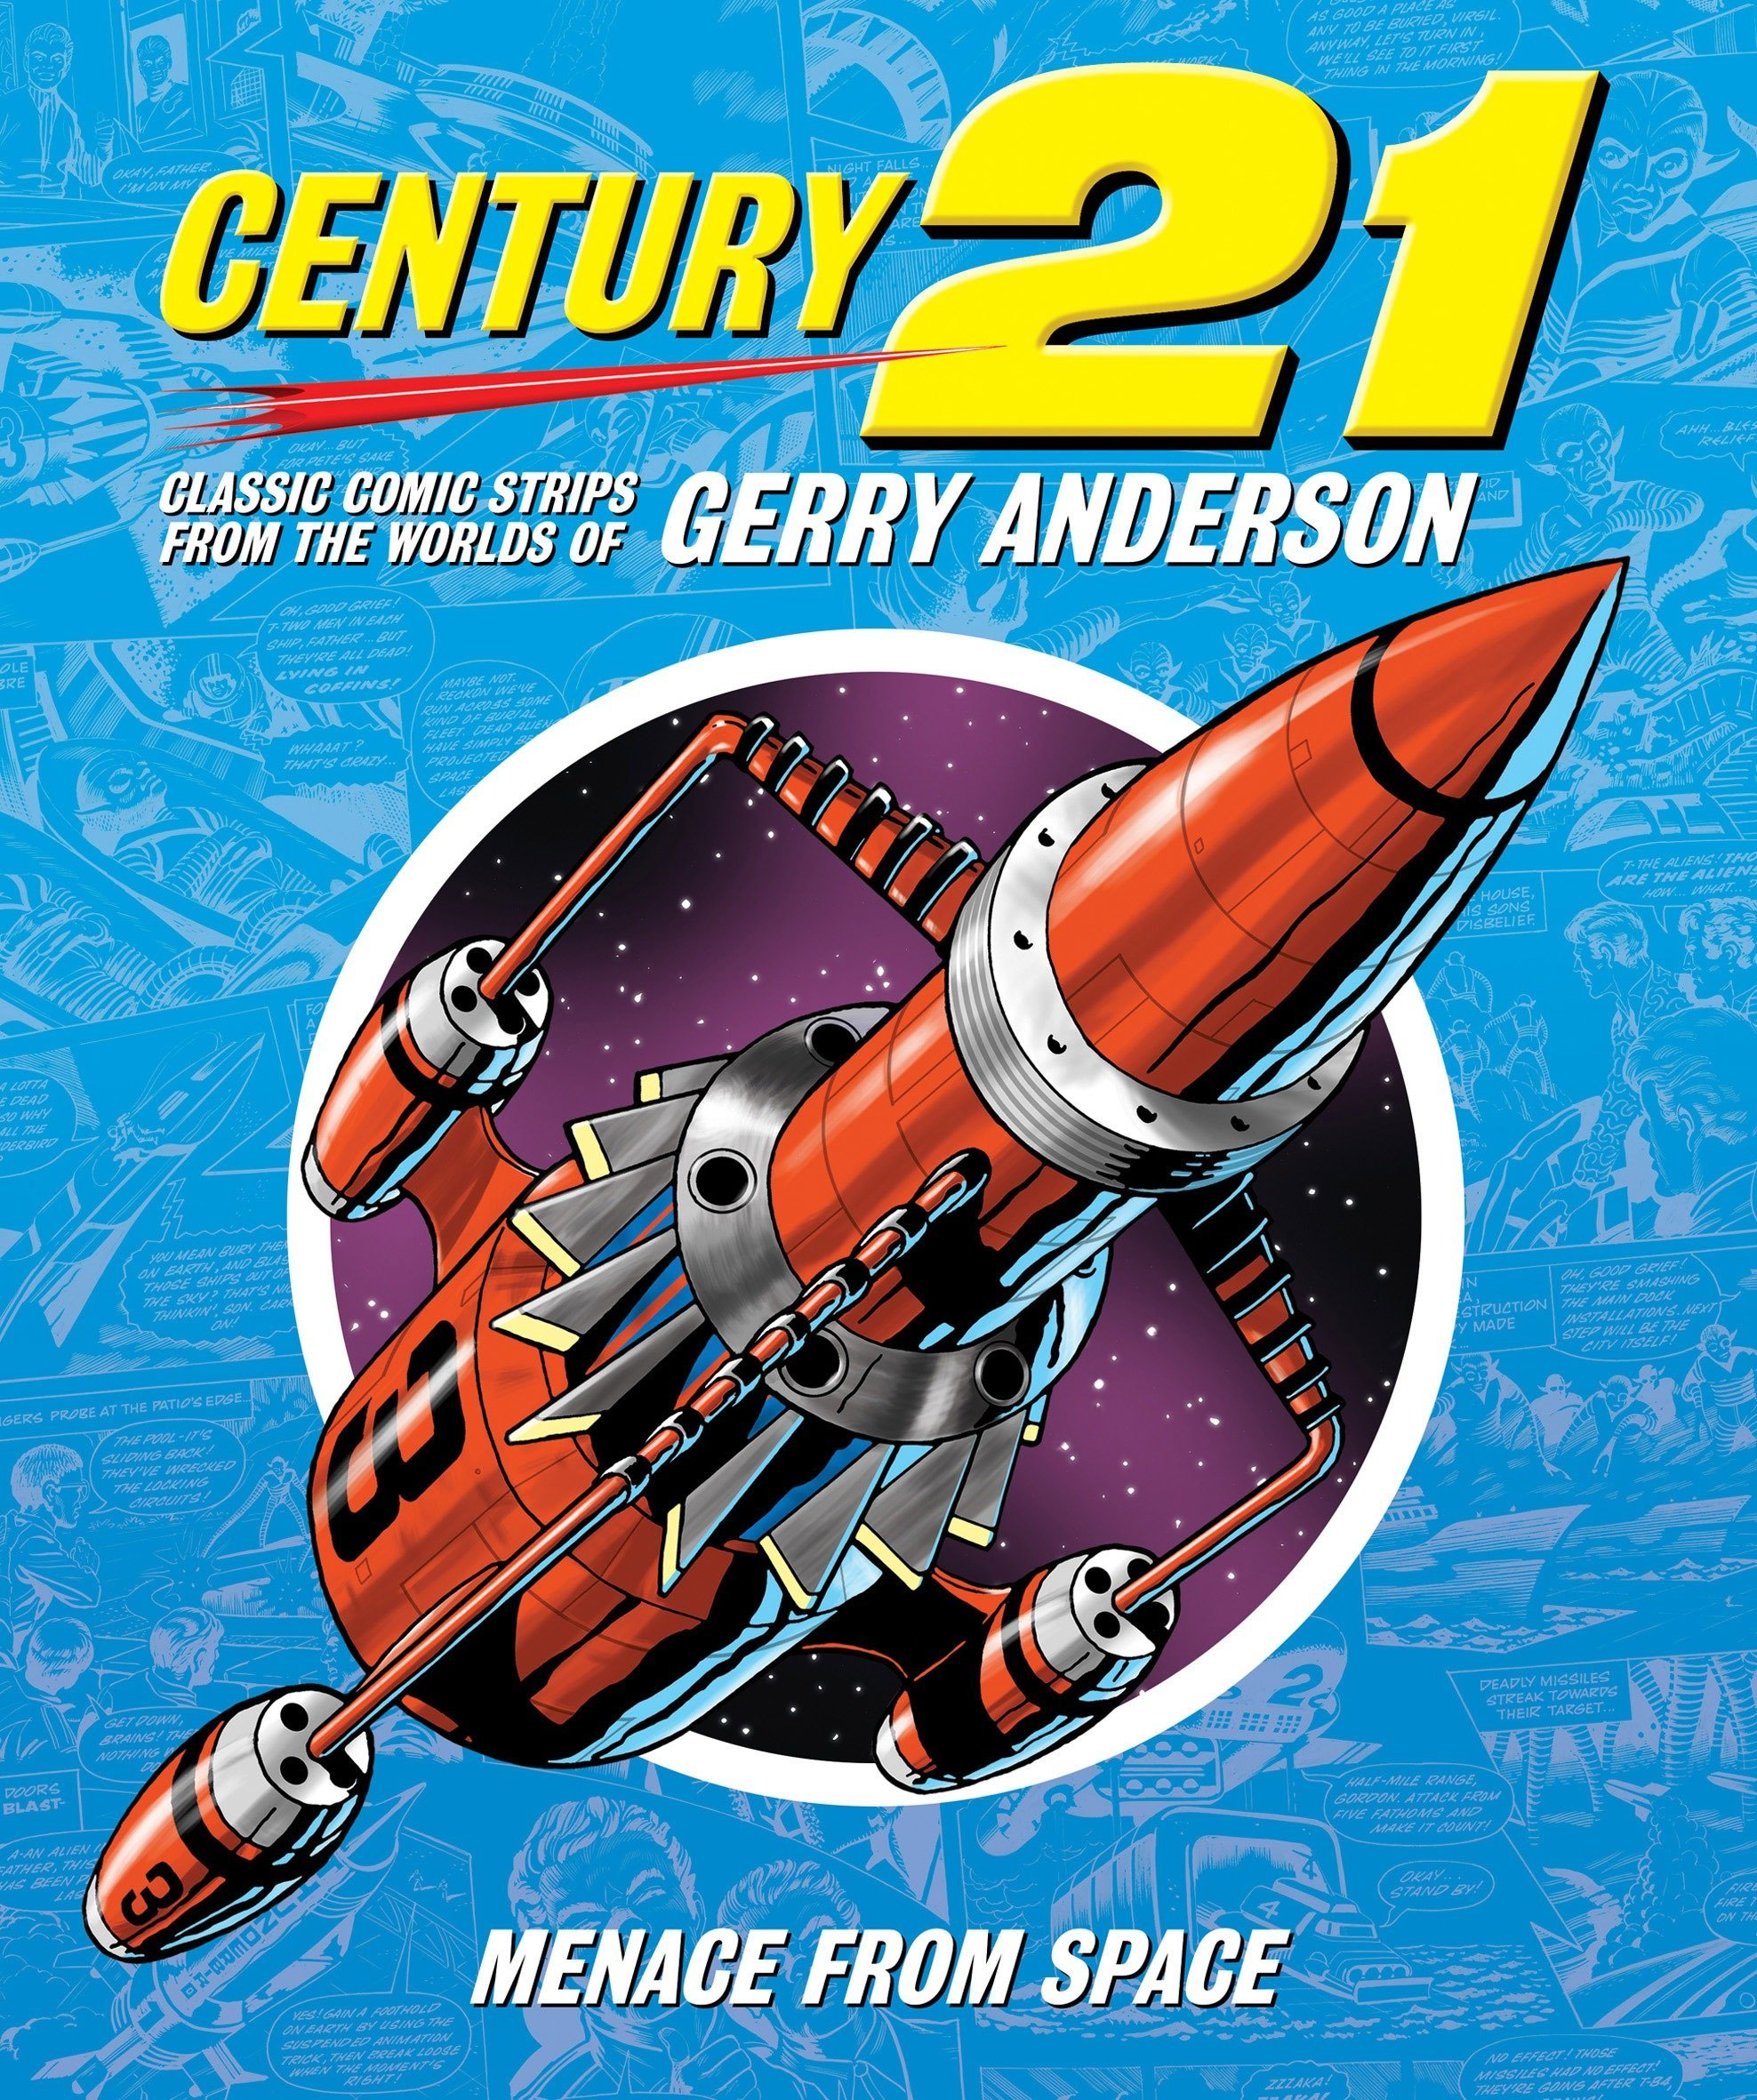 Century 21: Menace from Space (Century 21: Classic Comic Strips from the Worlds of Gerry Anderson) pdf epub